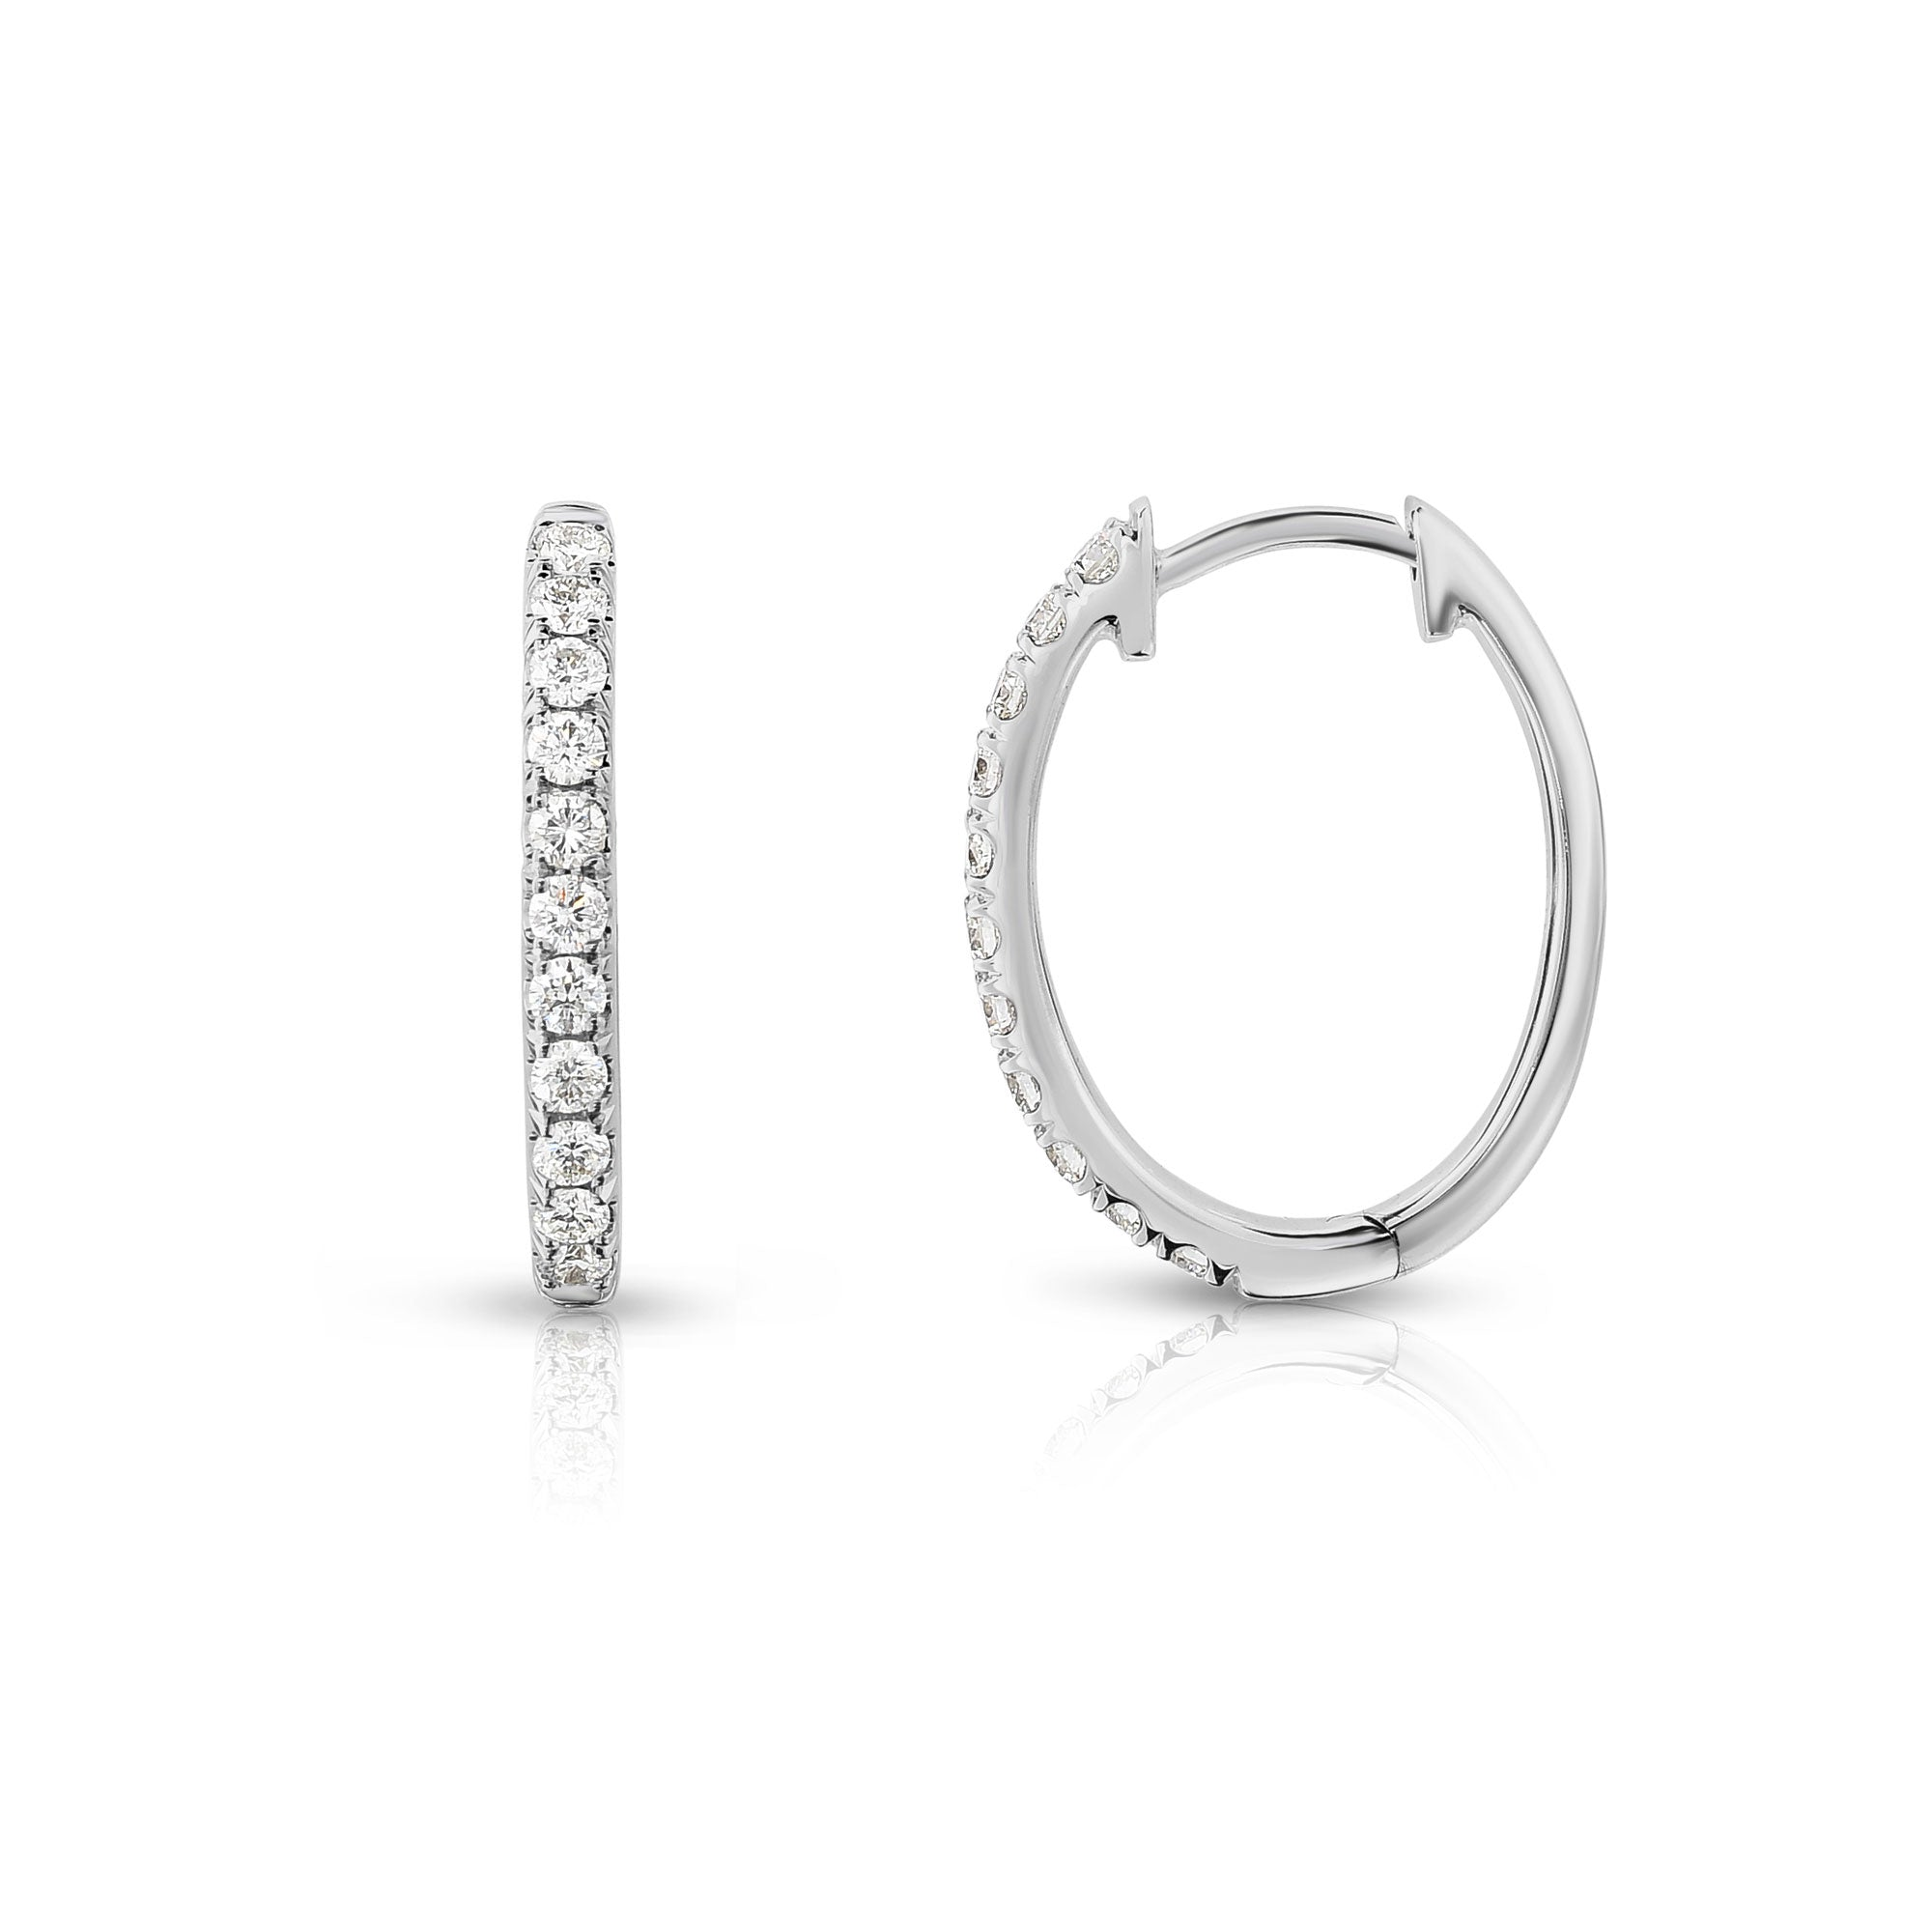 Oval Shape Diamond Hoop Earrings, .33 Carat, 14K White Gold